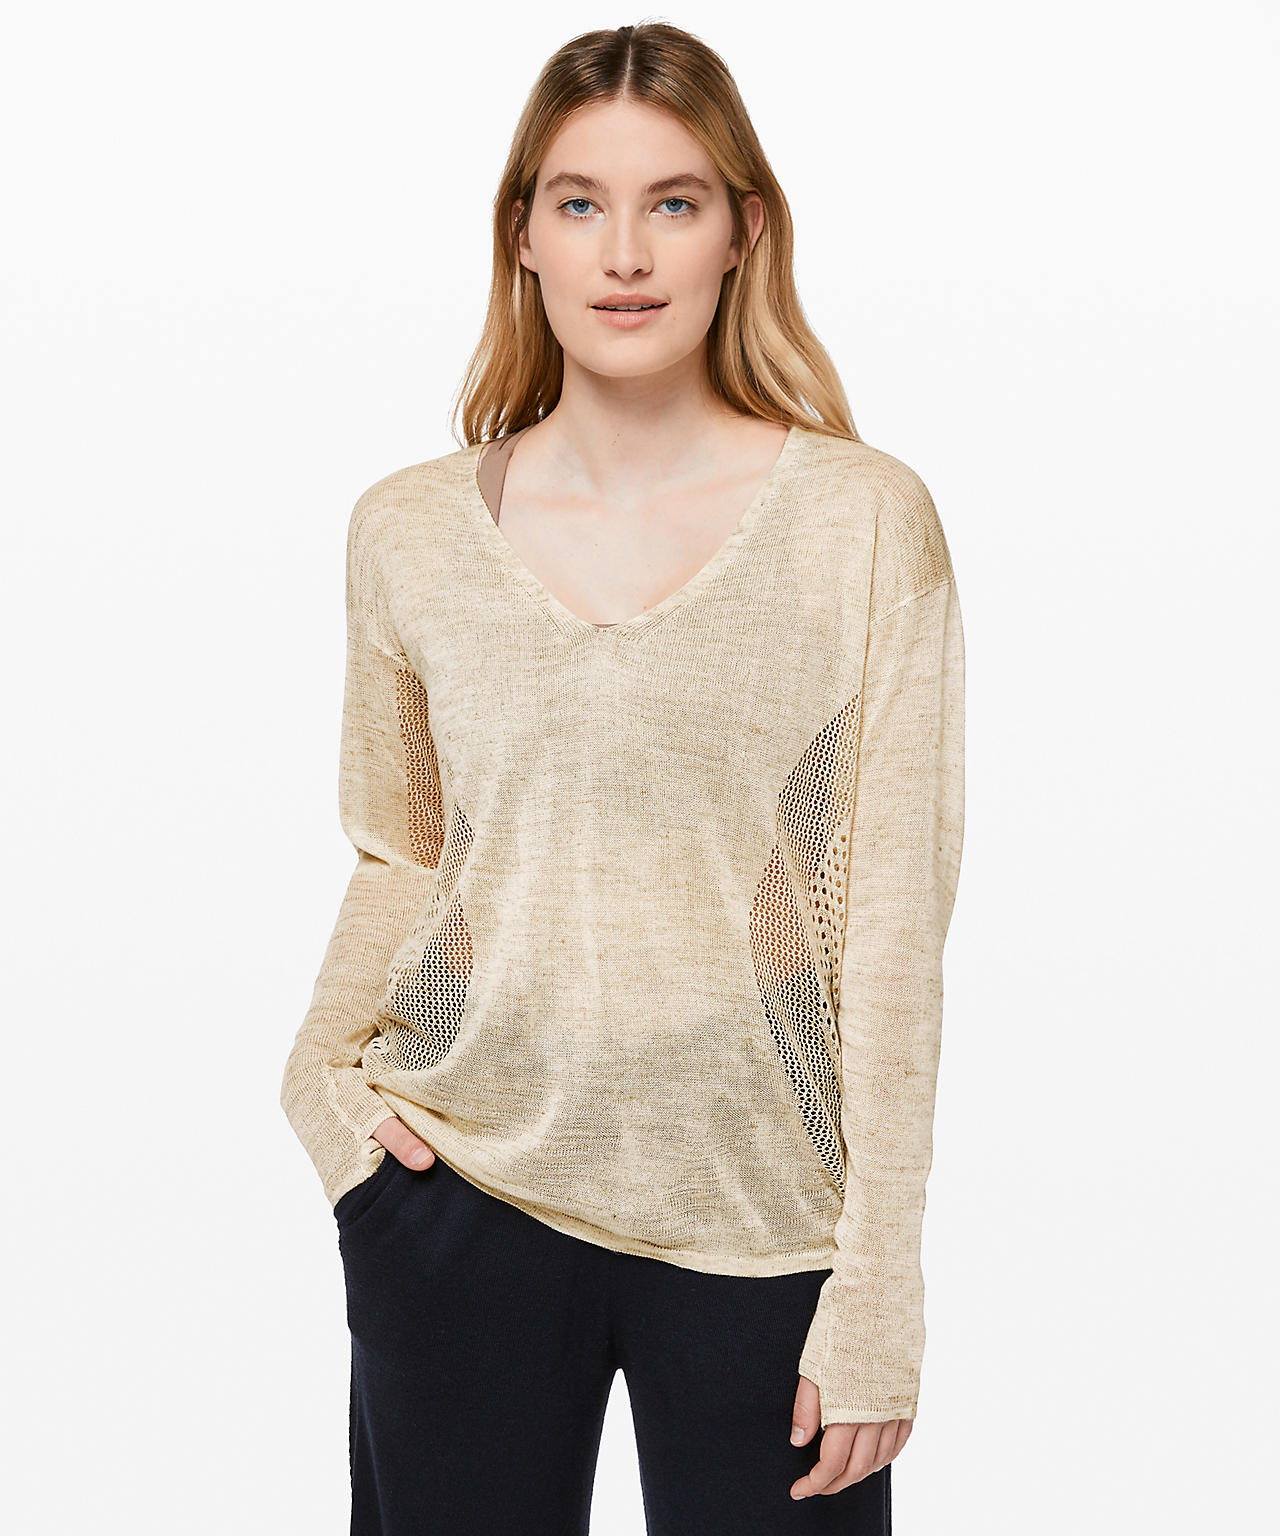 Still Movement Sweater, Lululemon